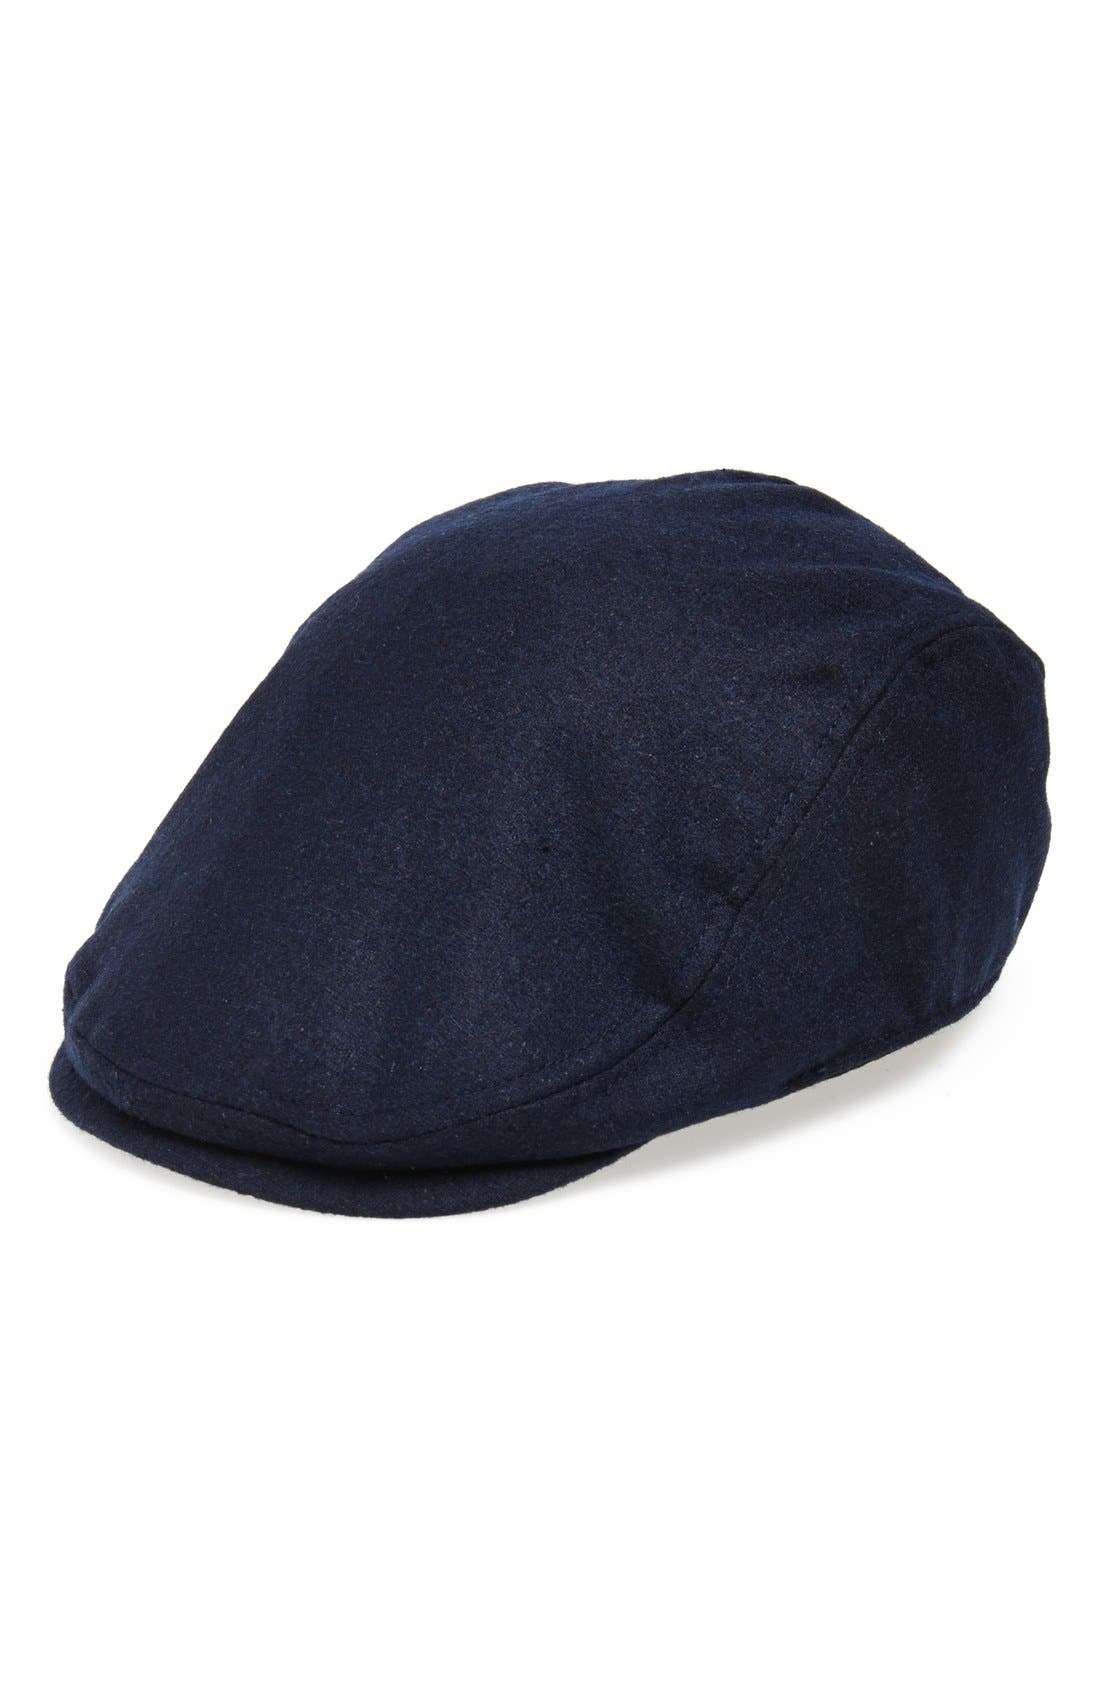 Glory Hats by Goorin 'Mikey' Driving Cap,                             Main thumbnail 1, color,                             410